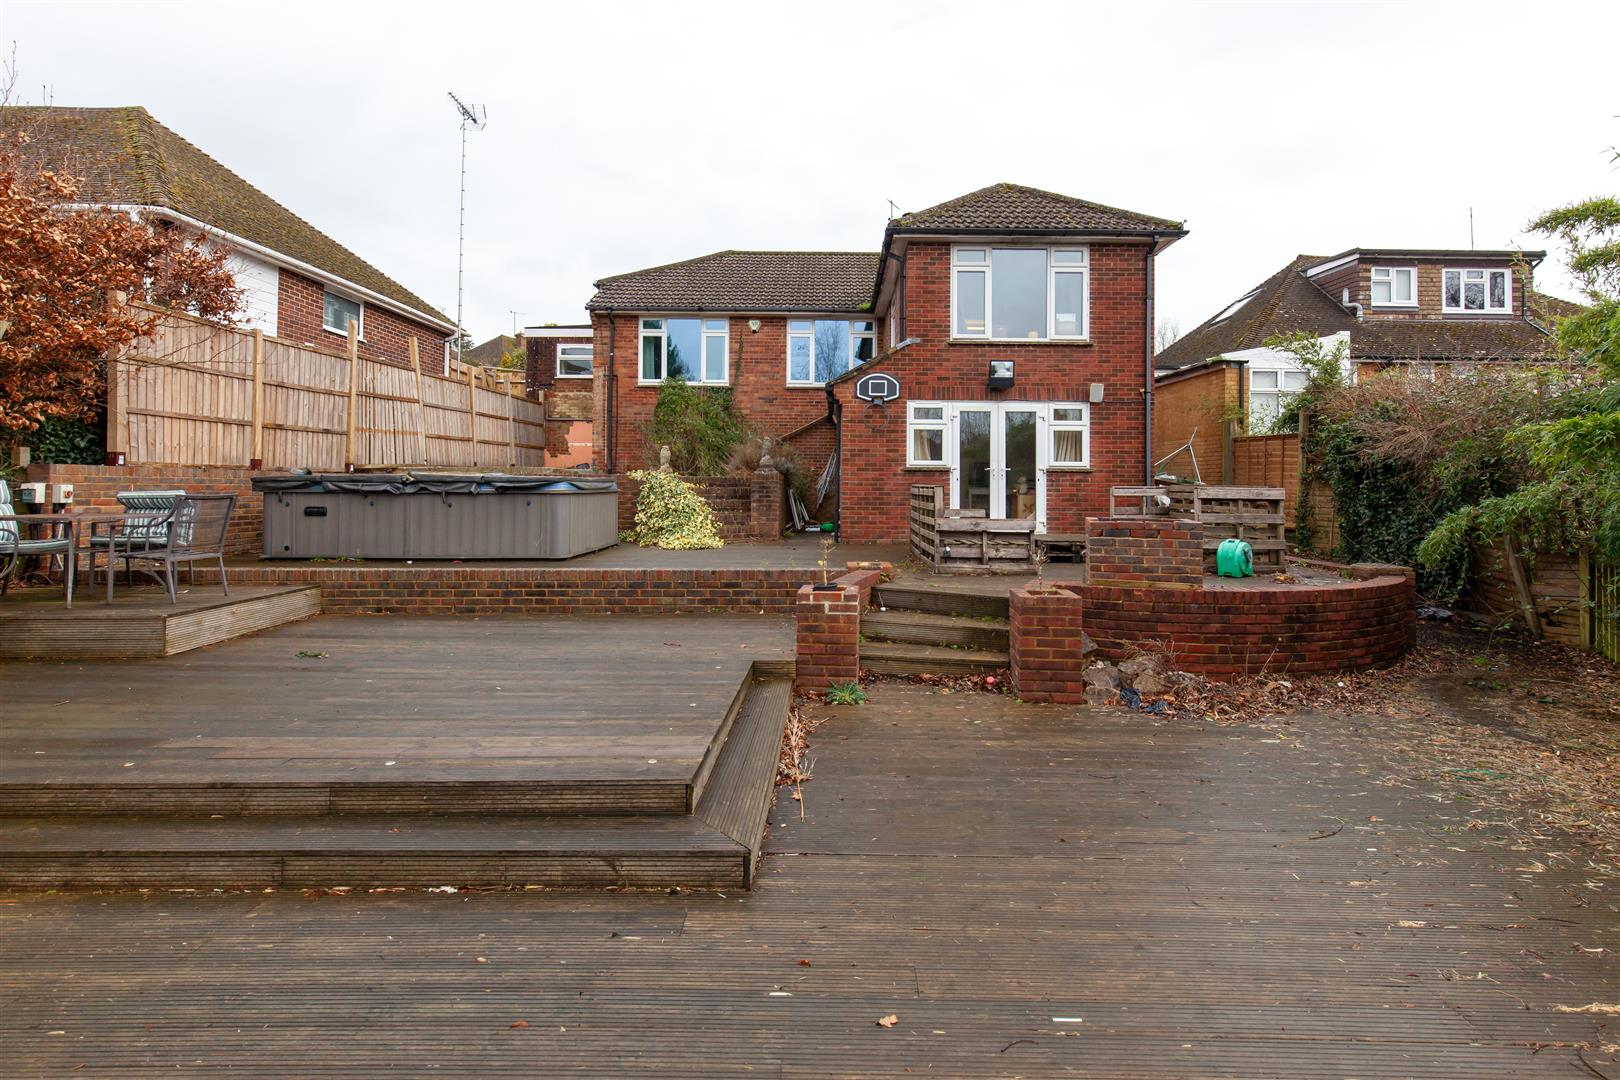 4 bed detached-bungalow for sale in Gorselands, Battle 28